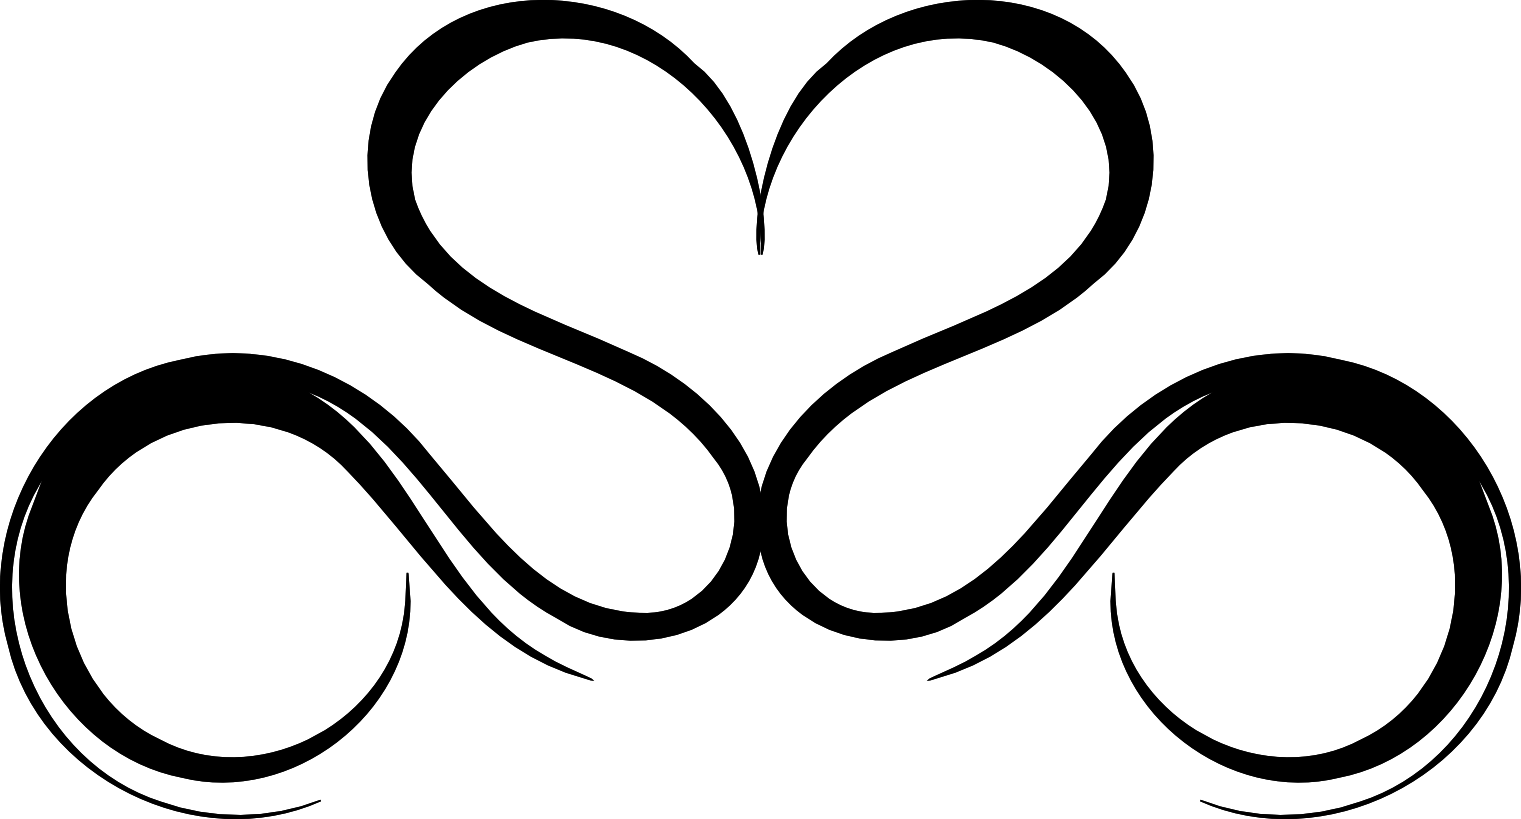 Sword through heart clipart b&w image transparent library Free Drawings Of Hearts With Banners, Download Free Clip Art ... image transparent library